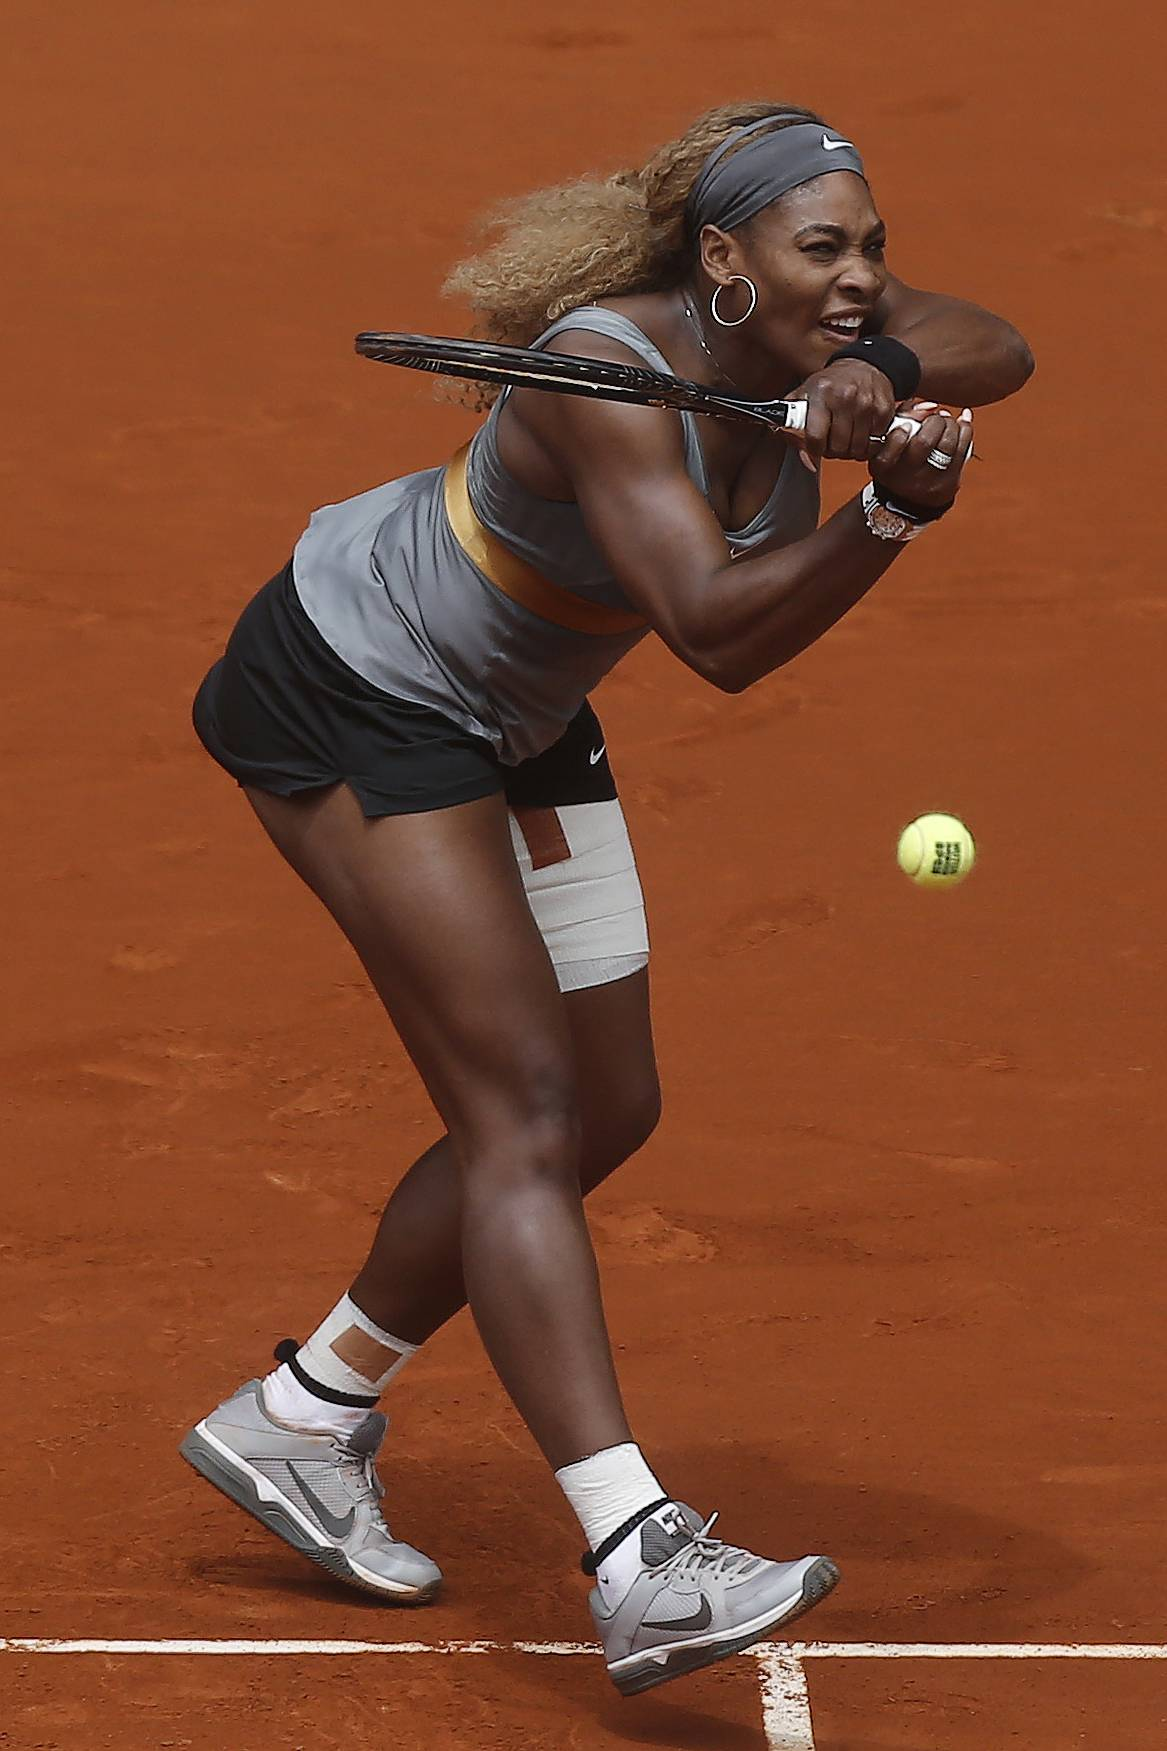 Serena Williams from U.S. returns the ball to Shuai Peng from China during a Madrid Open tennis tournament match, in Madrid, Spain, Wednesday May 7, 2014.